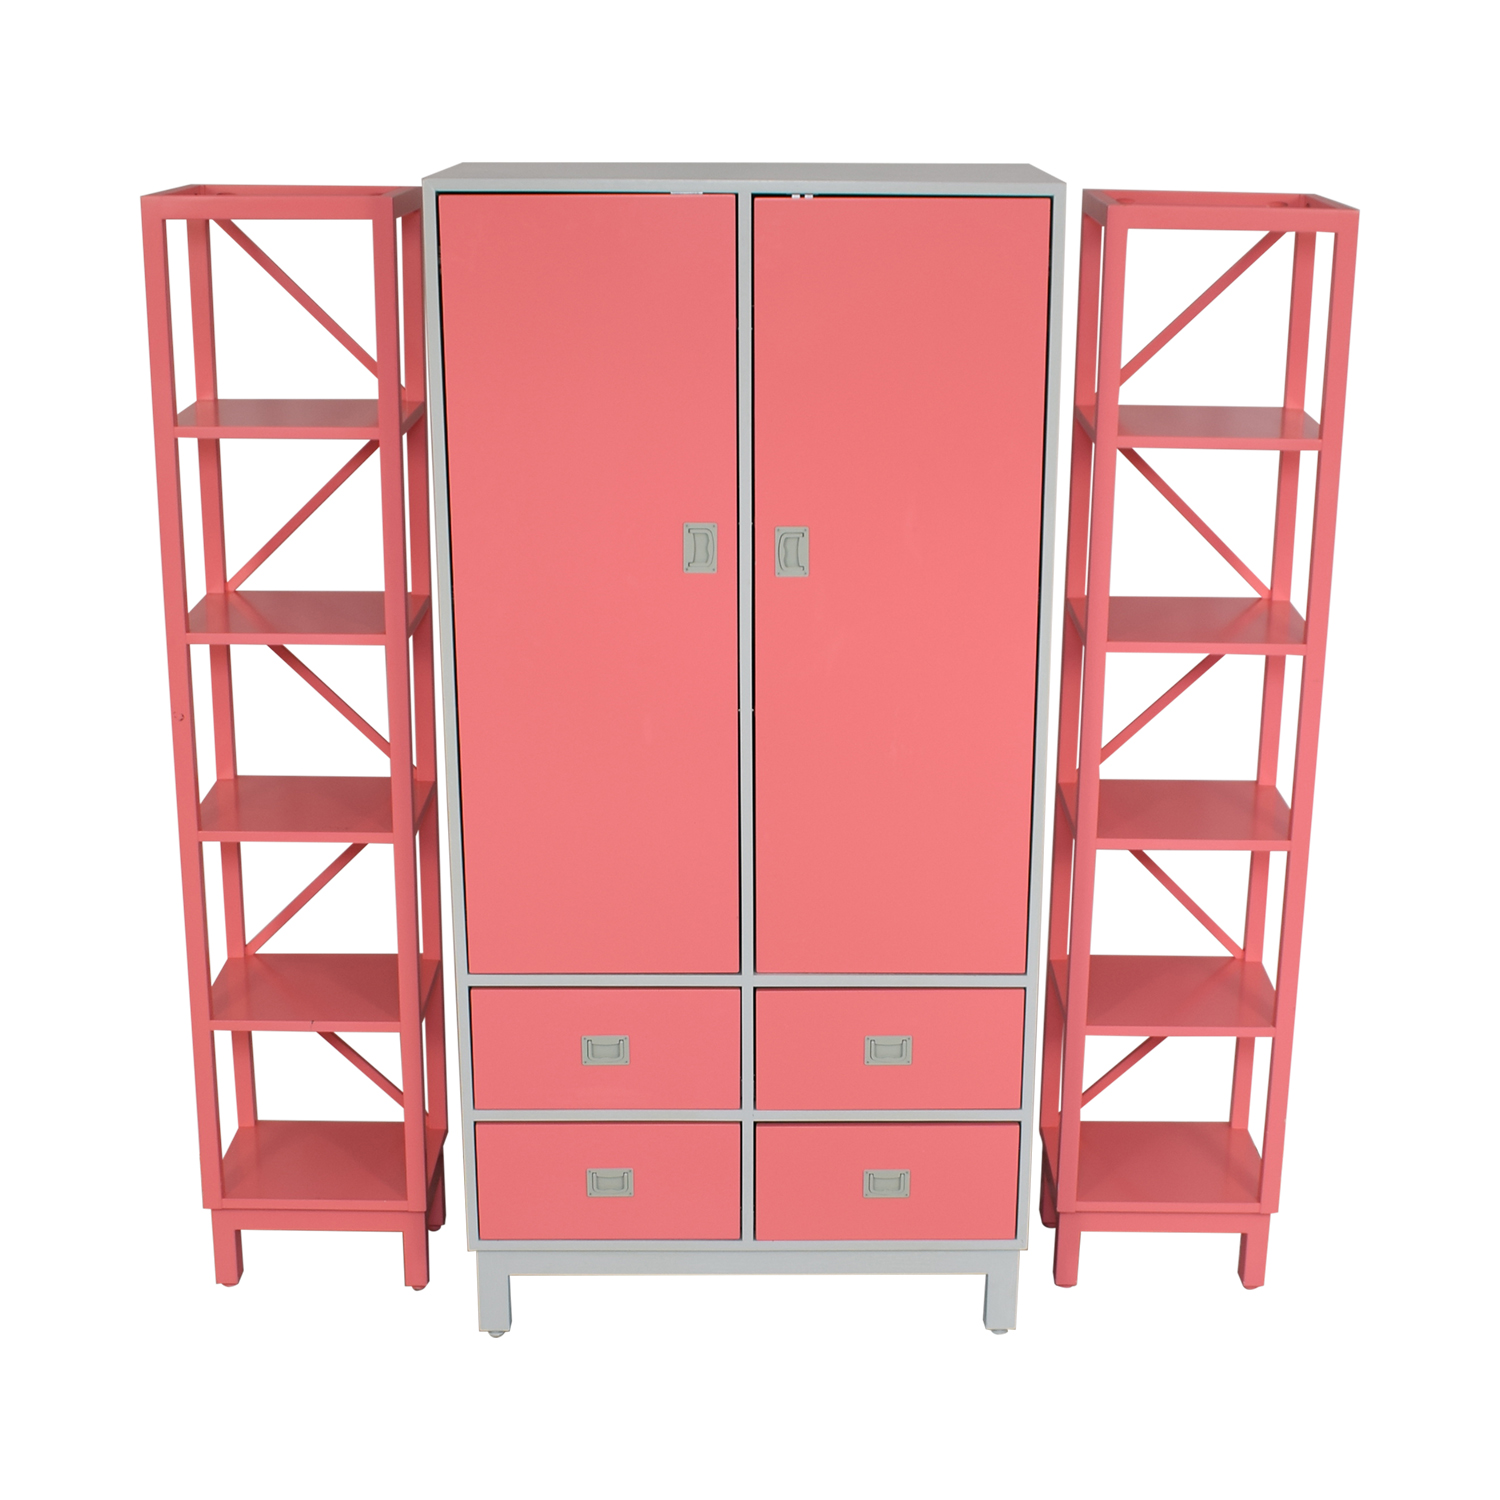 Ducduc Ducduc Campaign Armoire with Side Shelves pink and grey